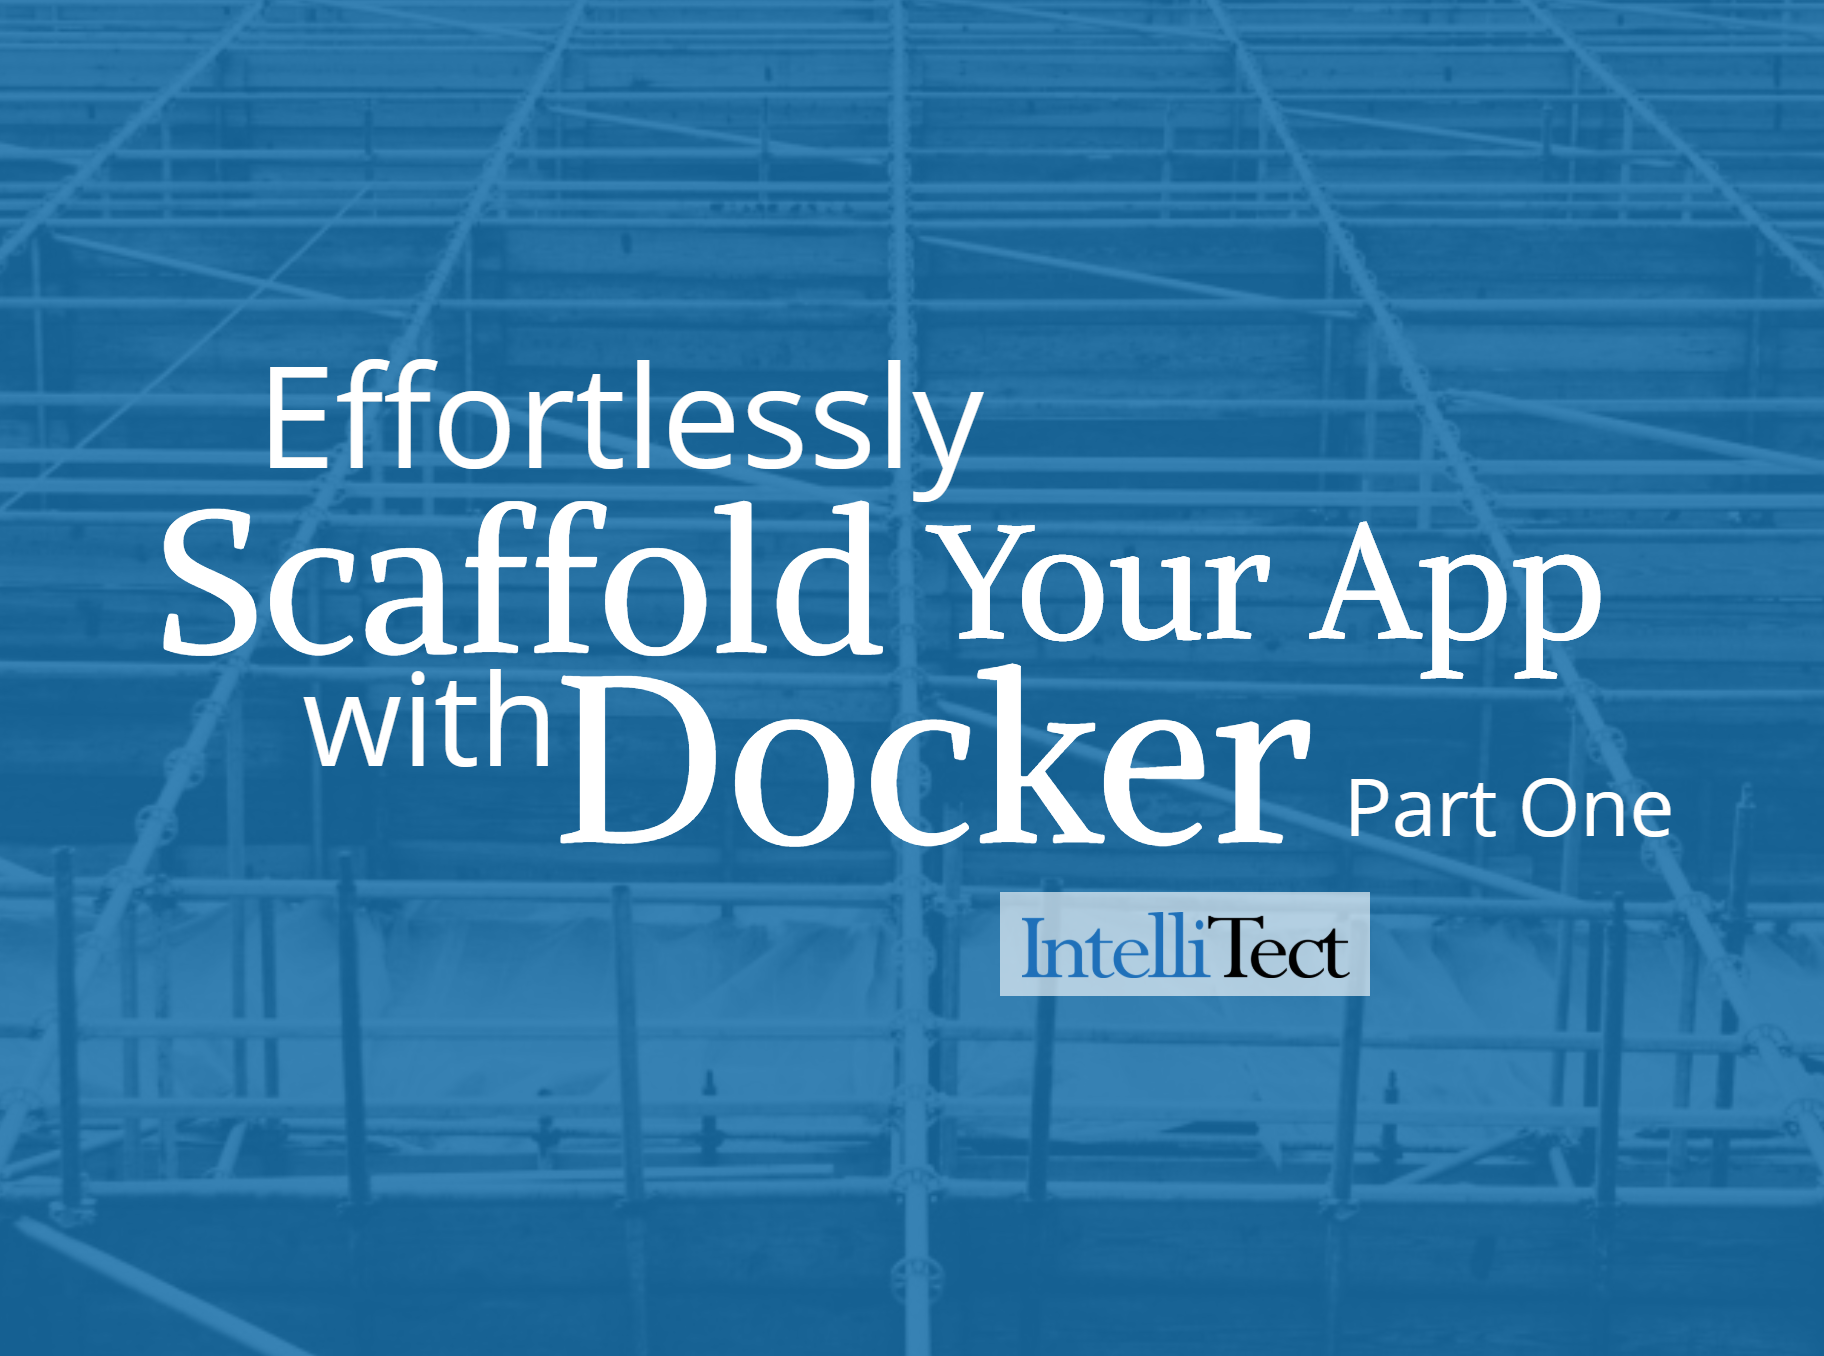 Effortlessly Scaffold Your App With Docker Part one graphic